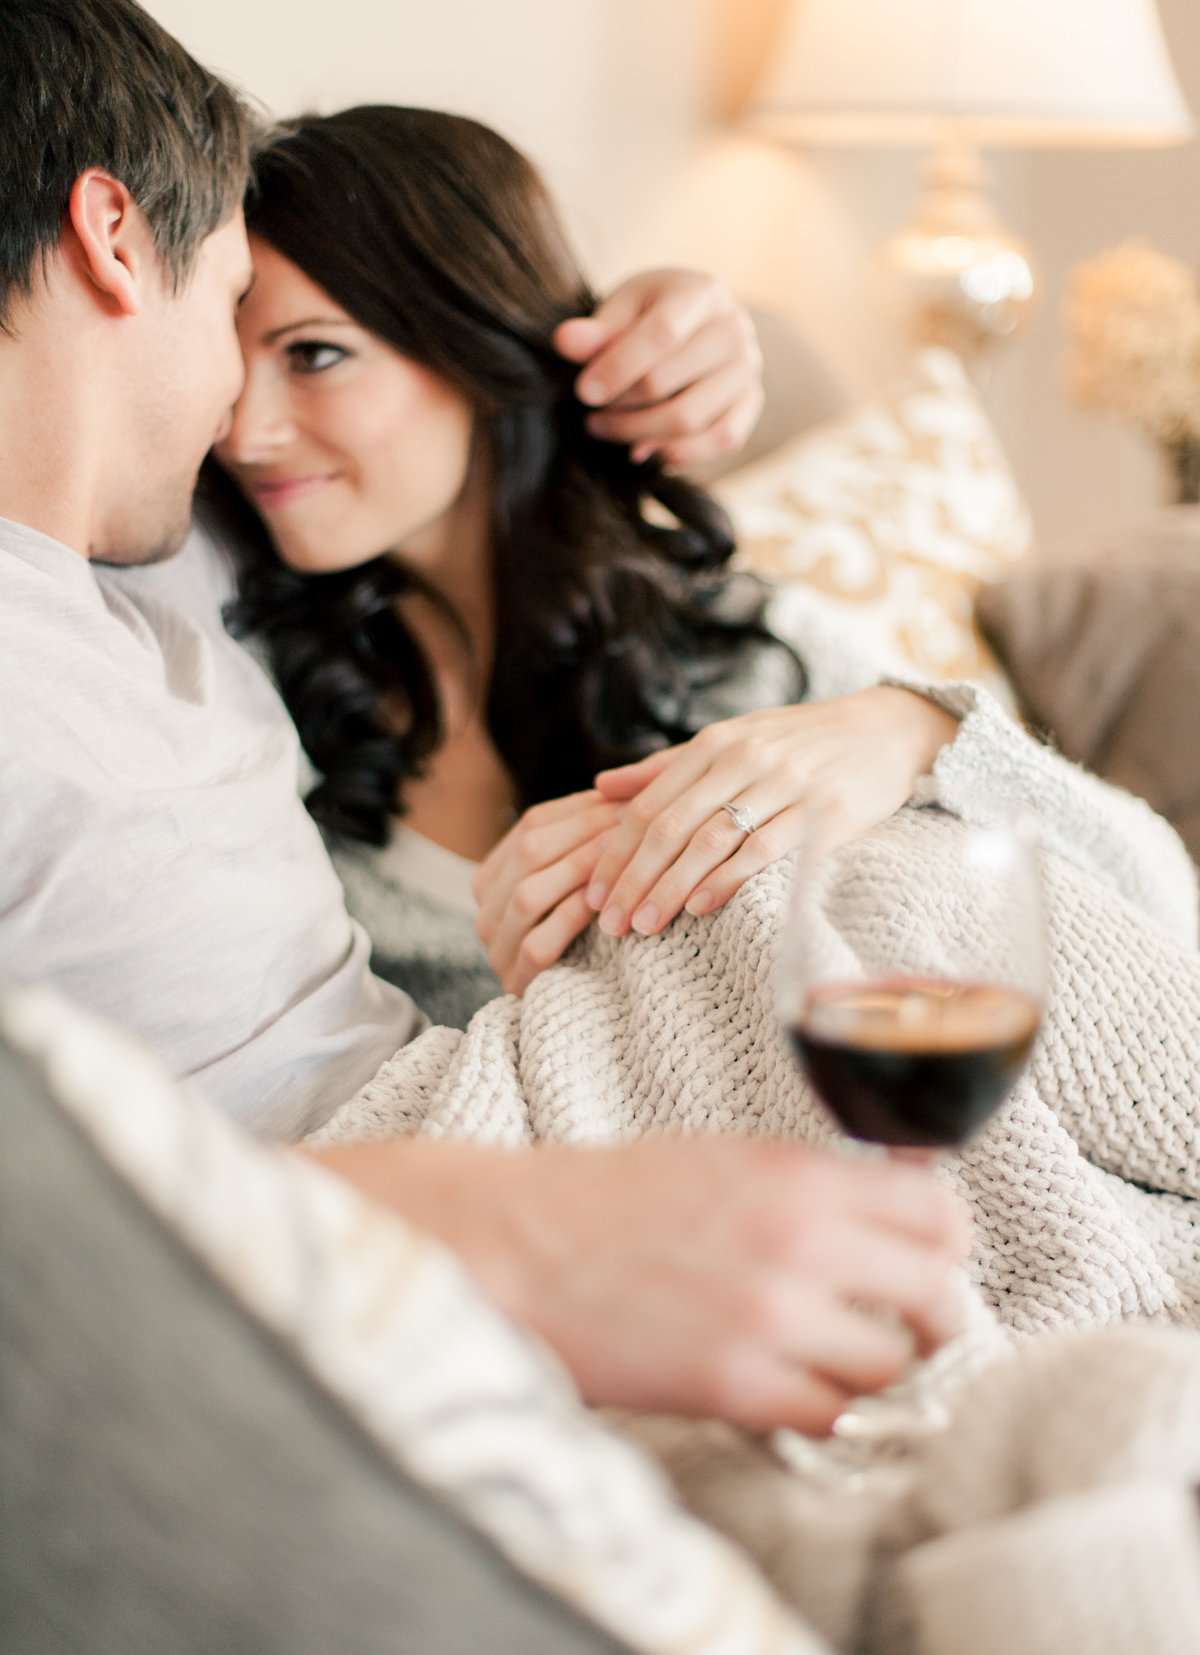 fiances hold wine and cuddle on the couch in rochester minnesota home for engagement photography